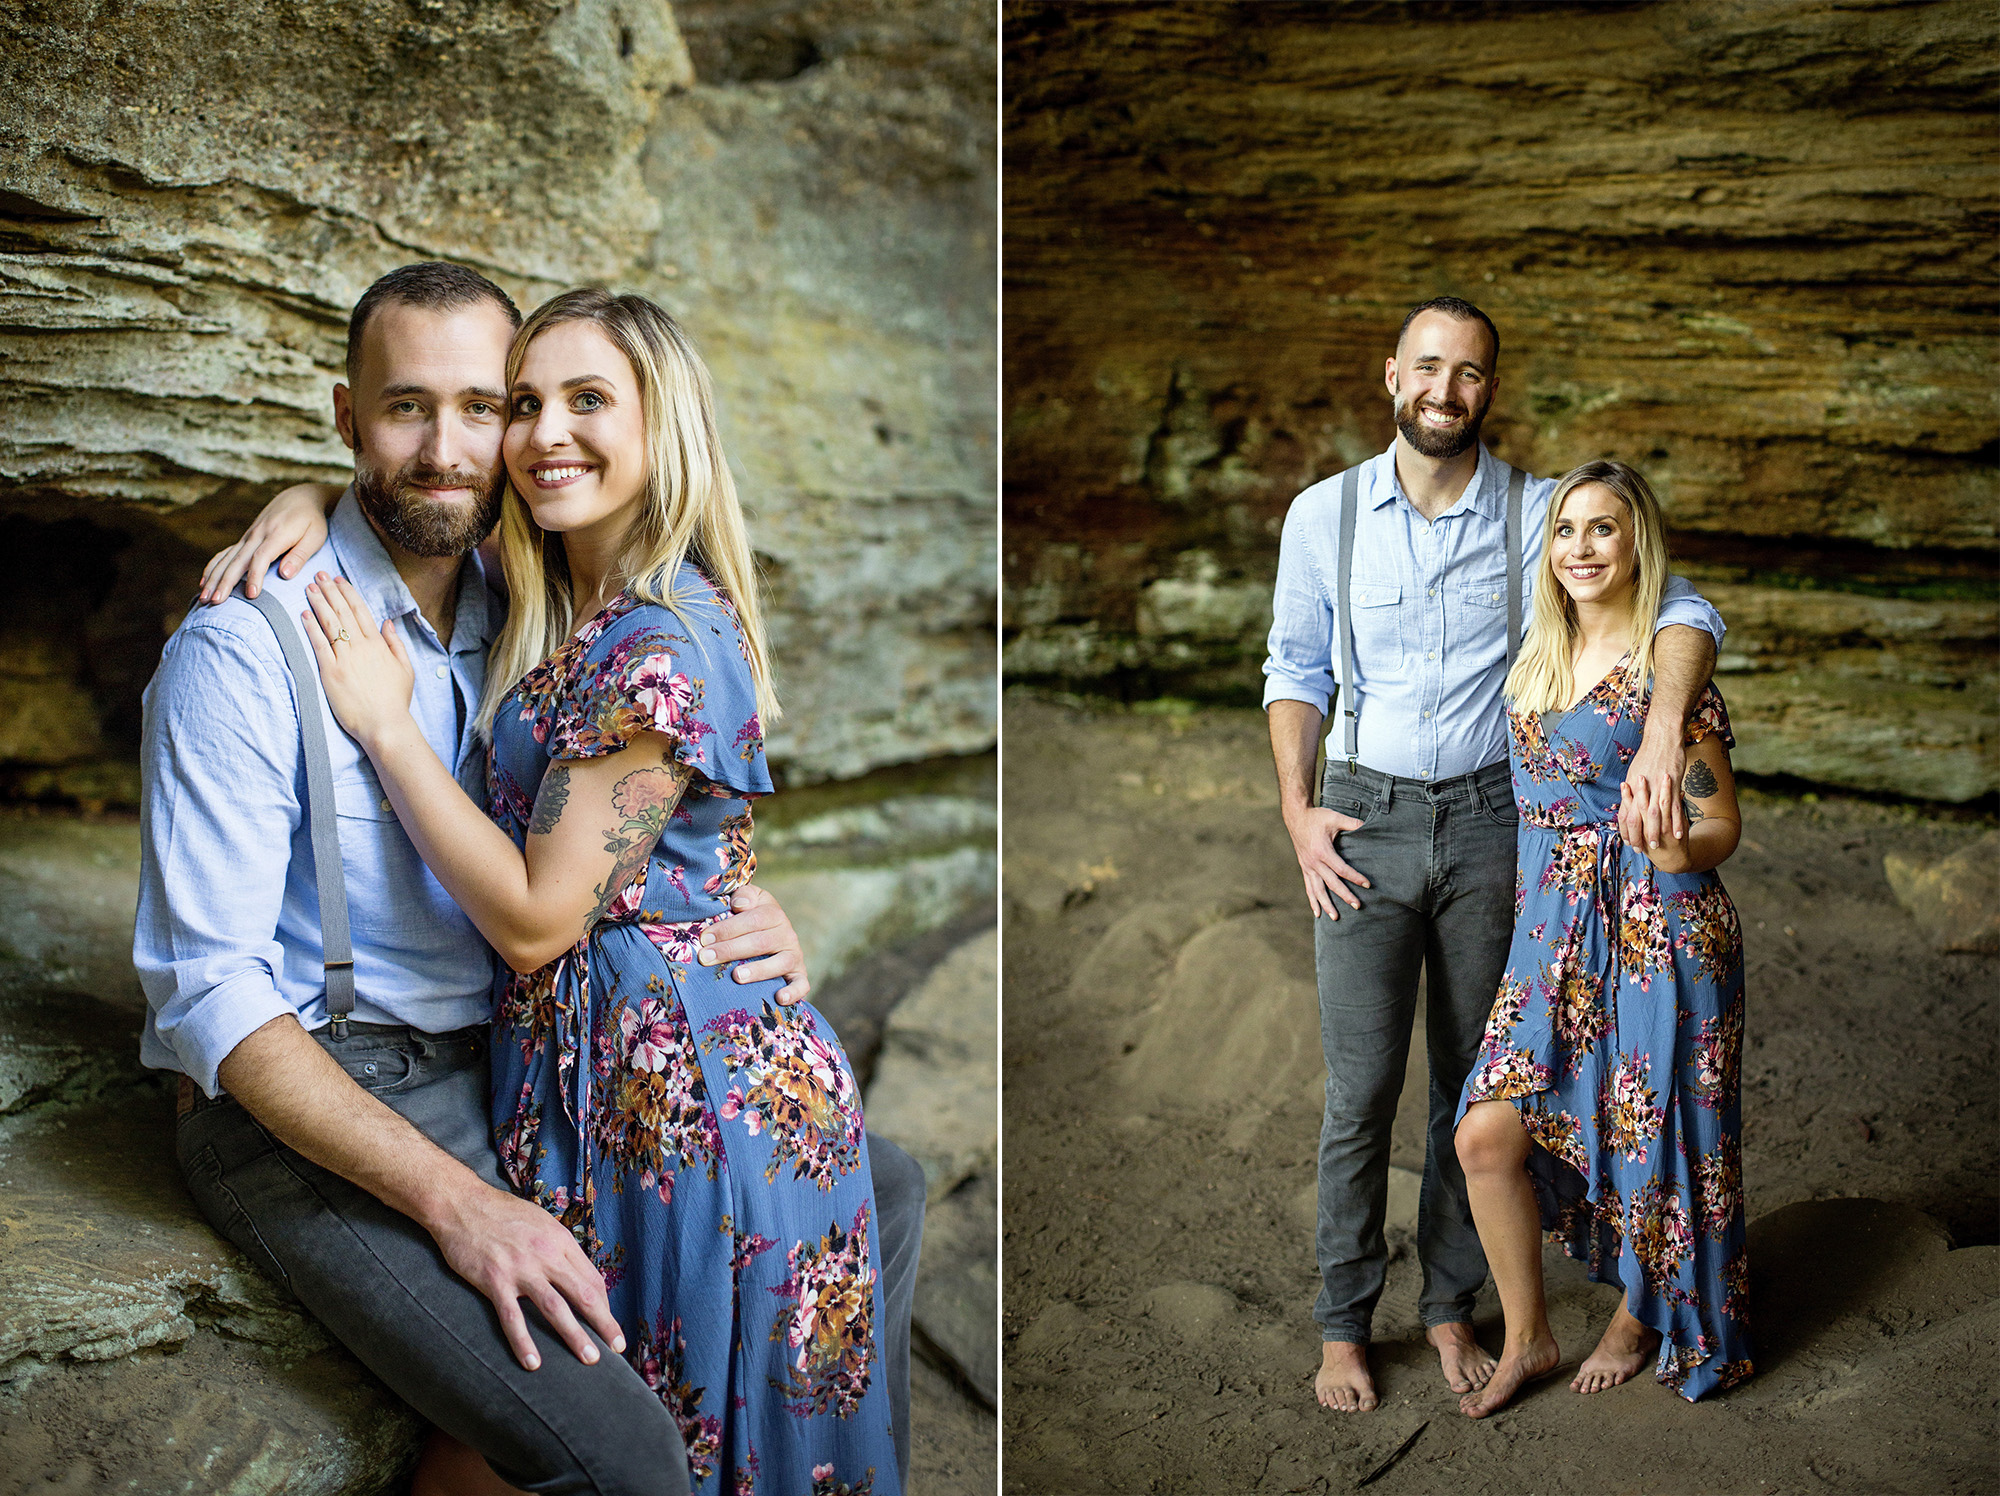 Seriously_Sabrina_Photography_Red_River_Gorge_Engagement_Session_Monika_Steven_8.jpg